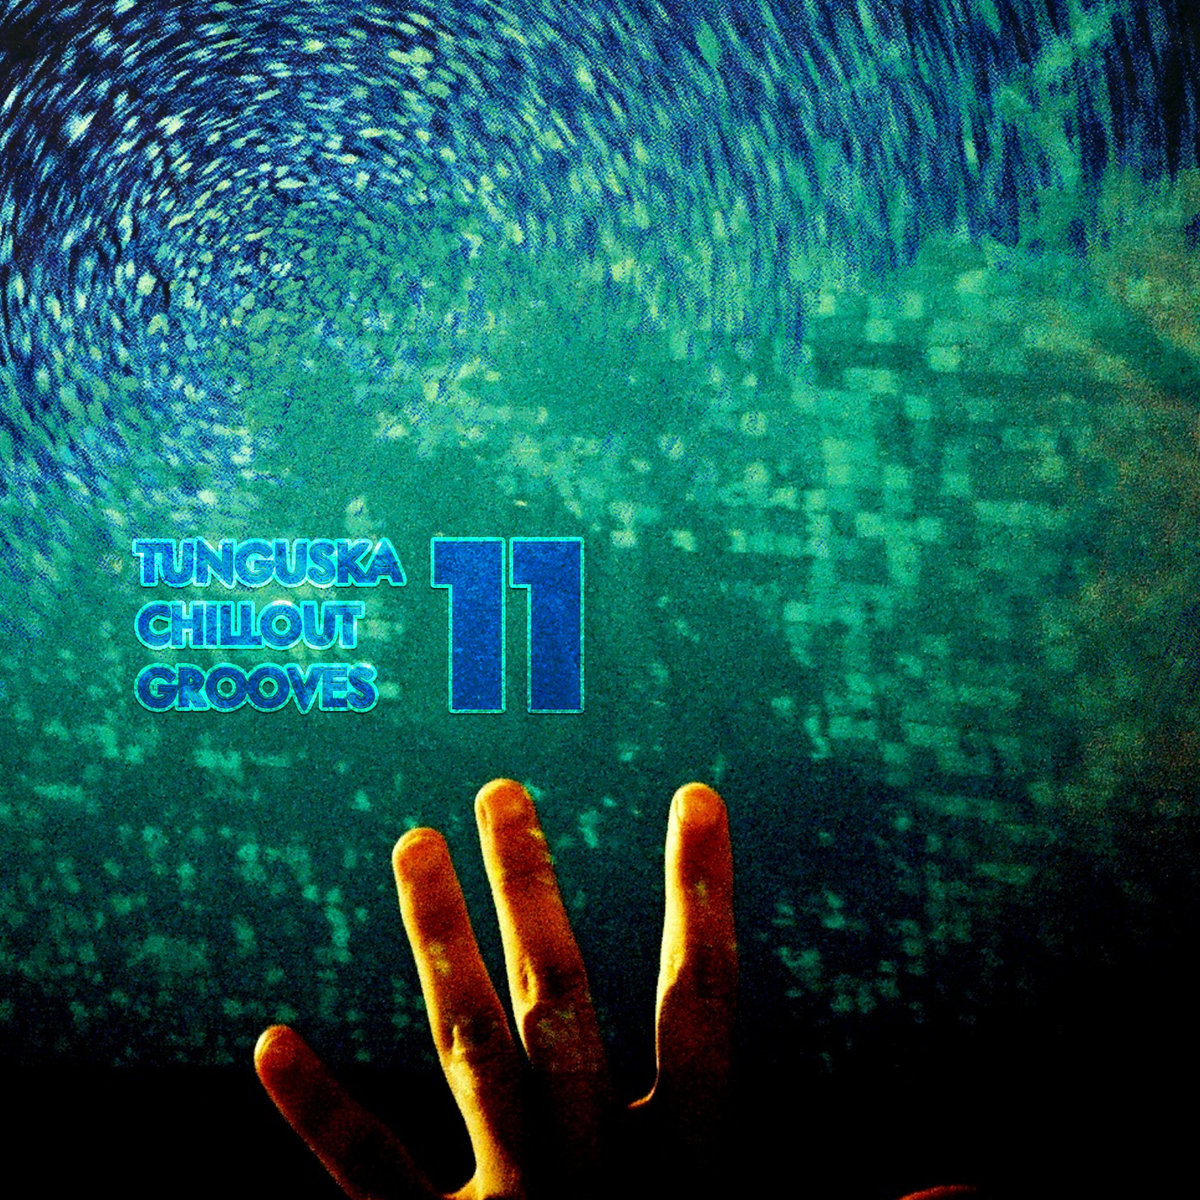 Pianochocolate - More Than the Ocean @ 'Tunguska Chillout Grooves - Volume 11' album (electronic, ambient)